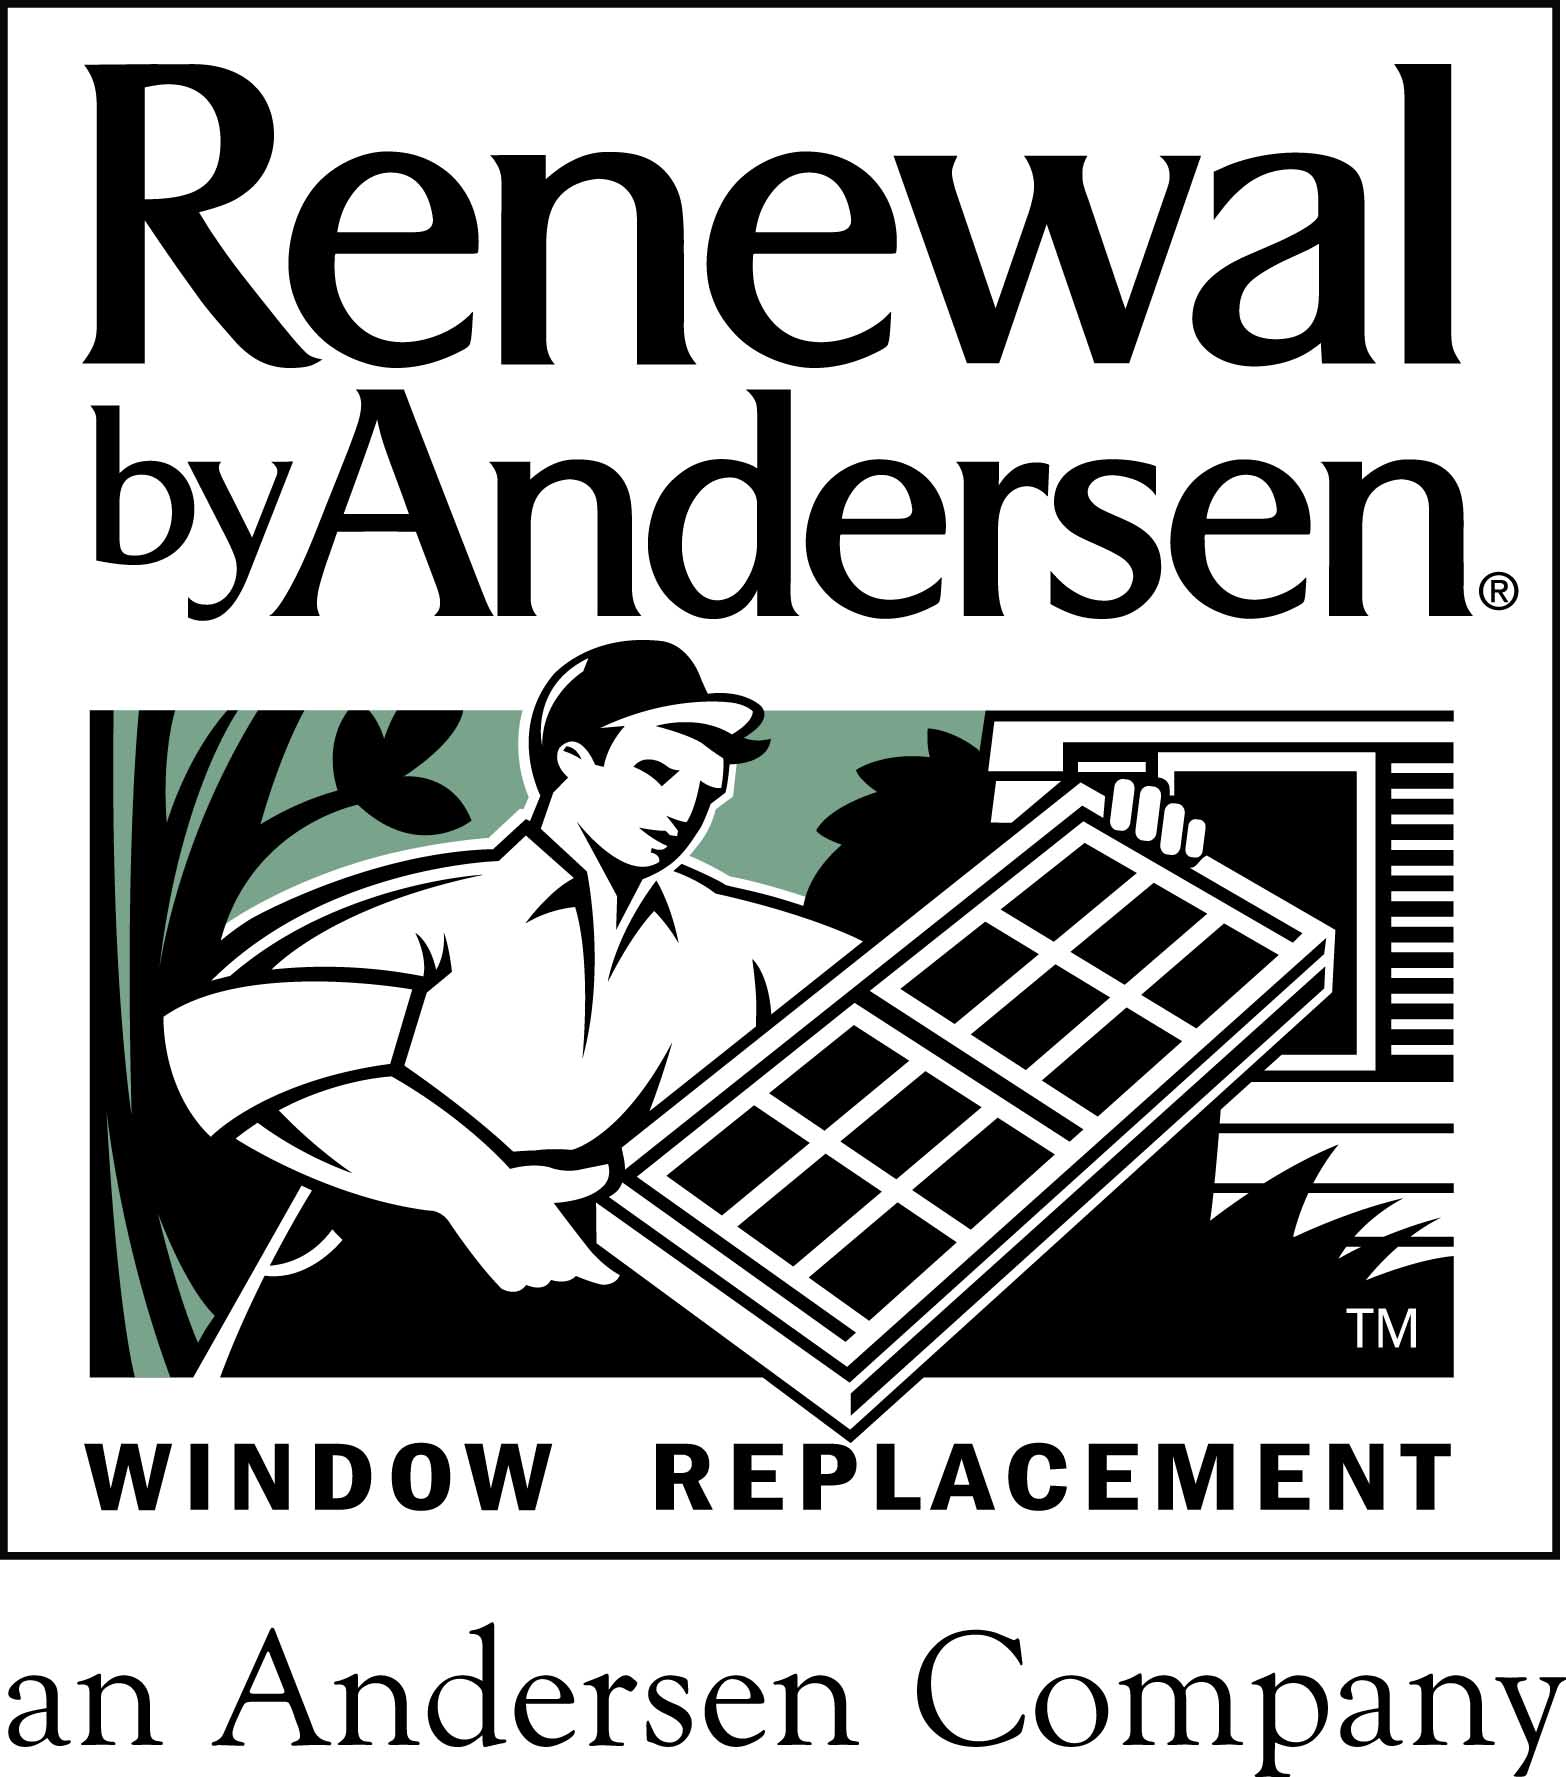 RenewalAndersen_logo_square_4c Opens in new window